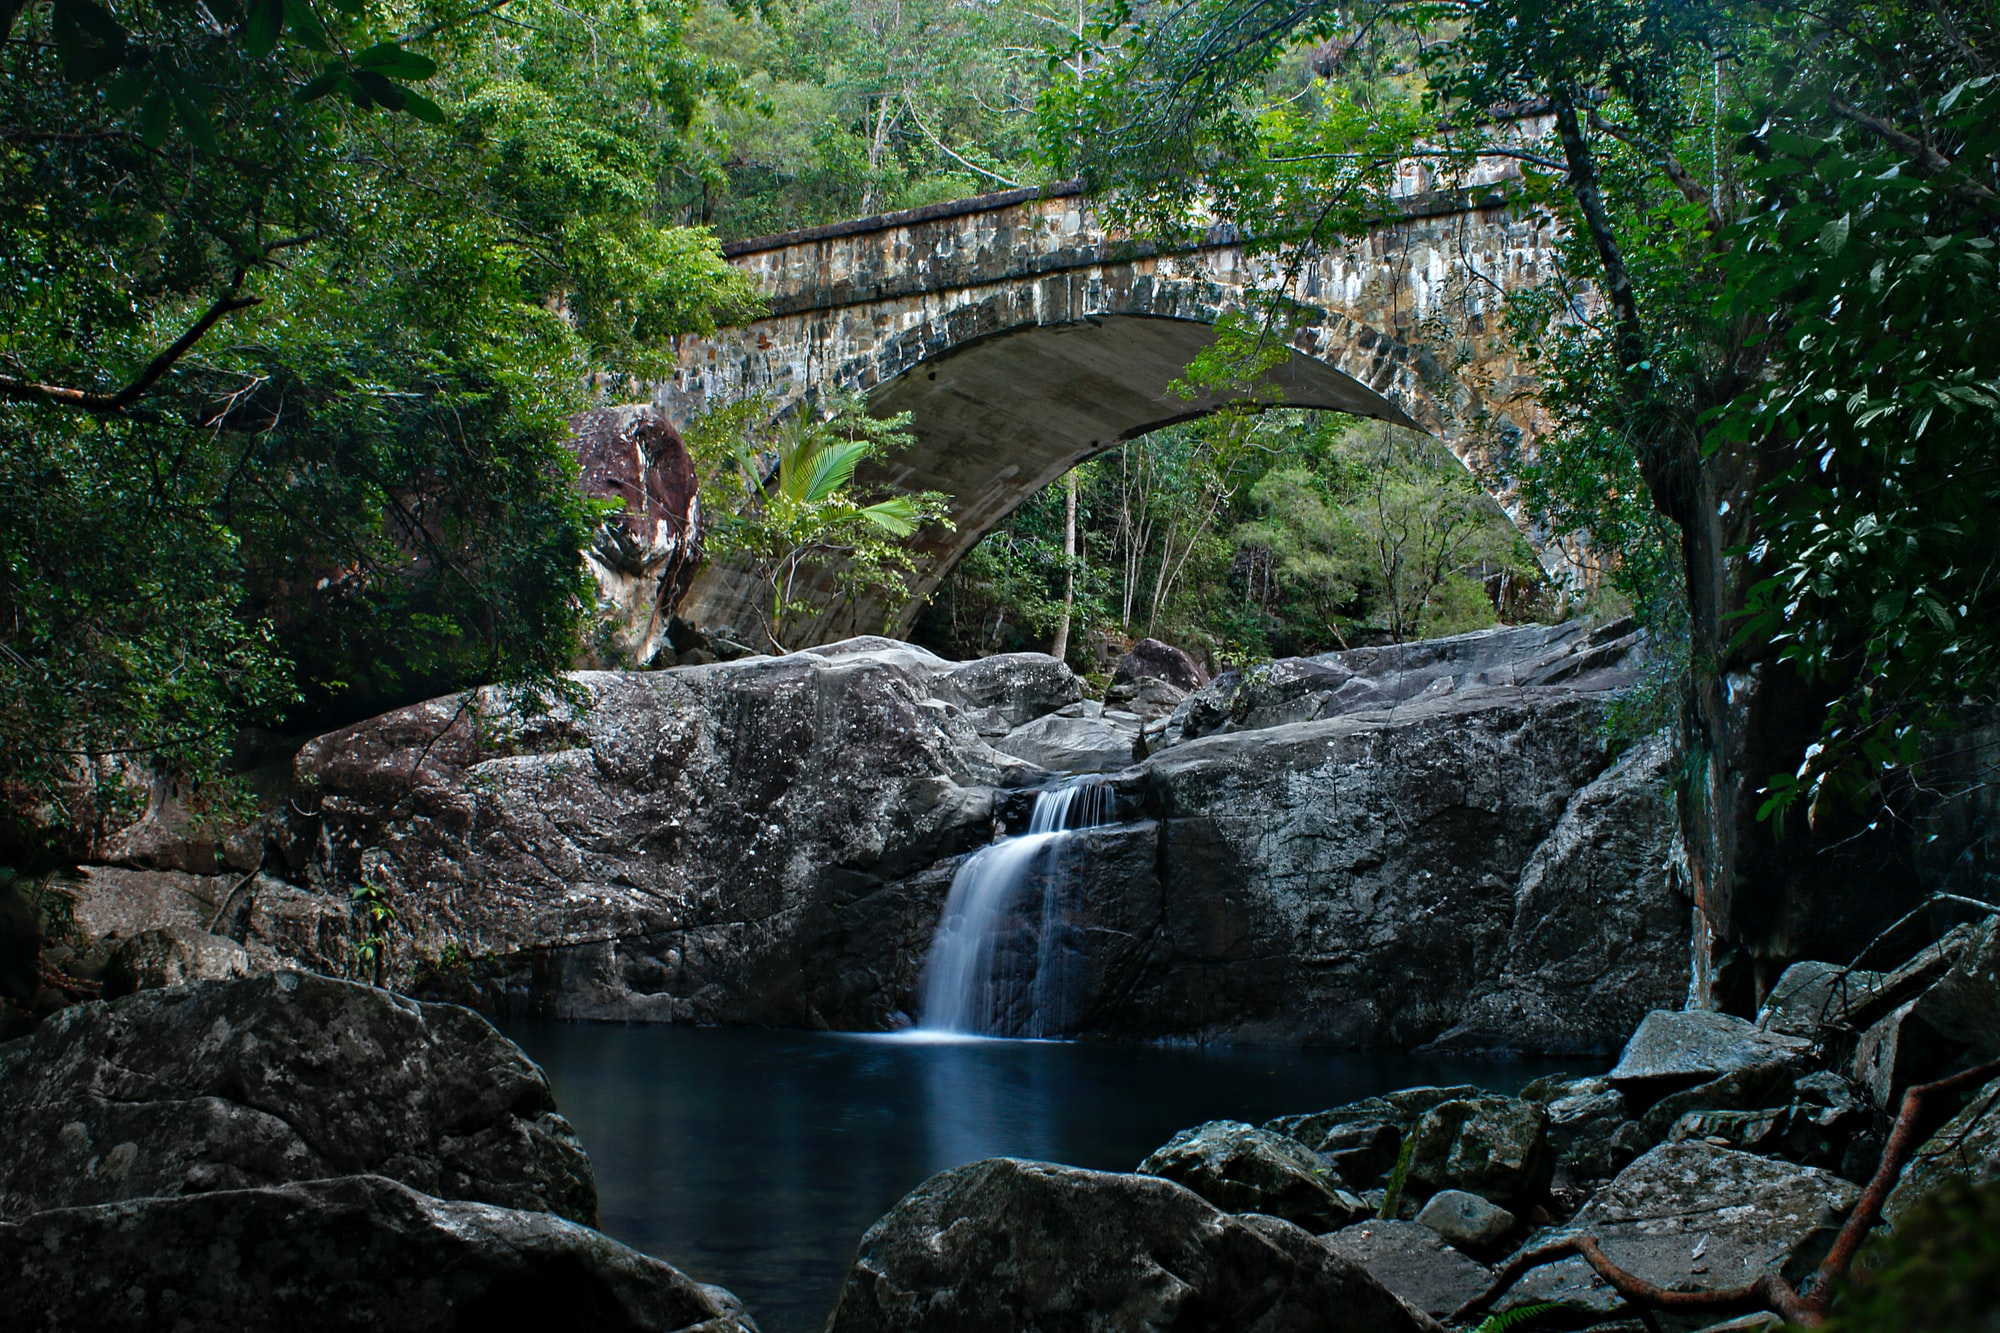 Little Crystal Creek Bridge and Swimming Area